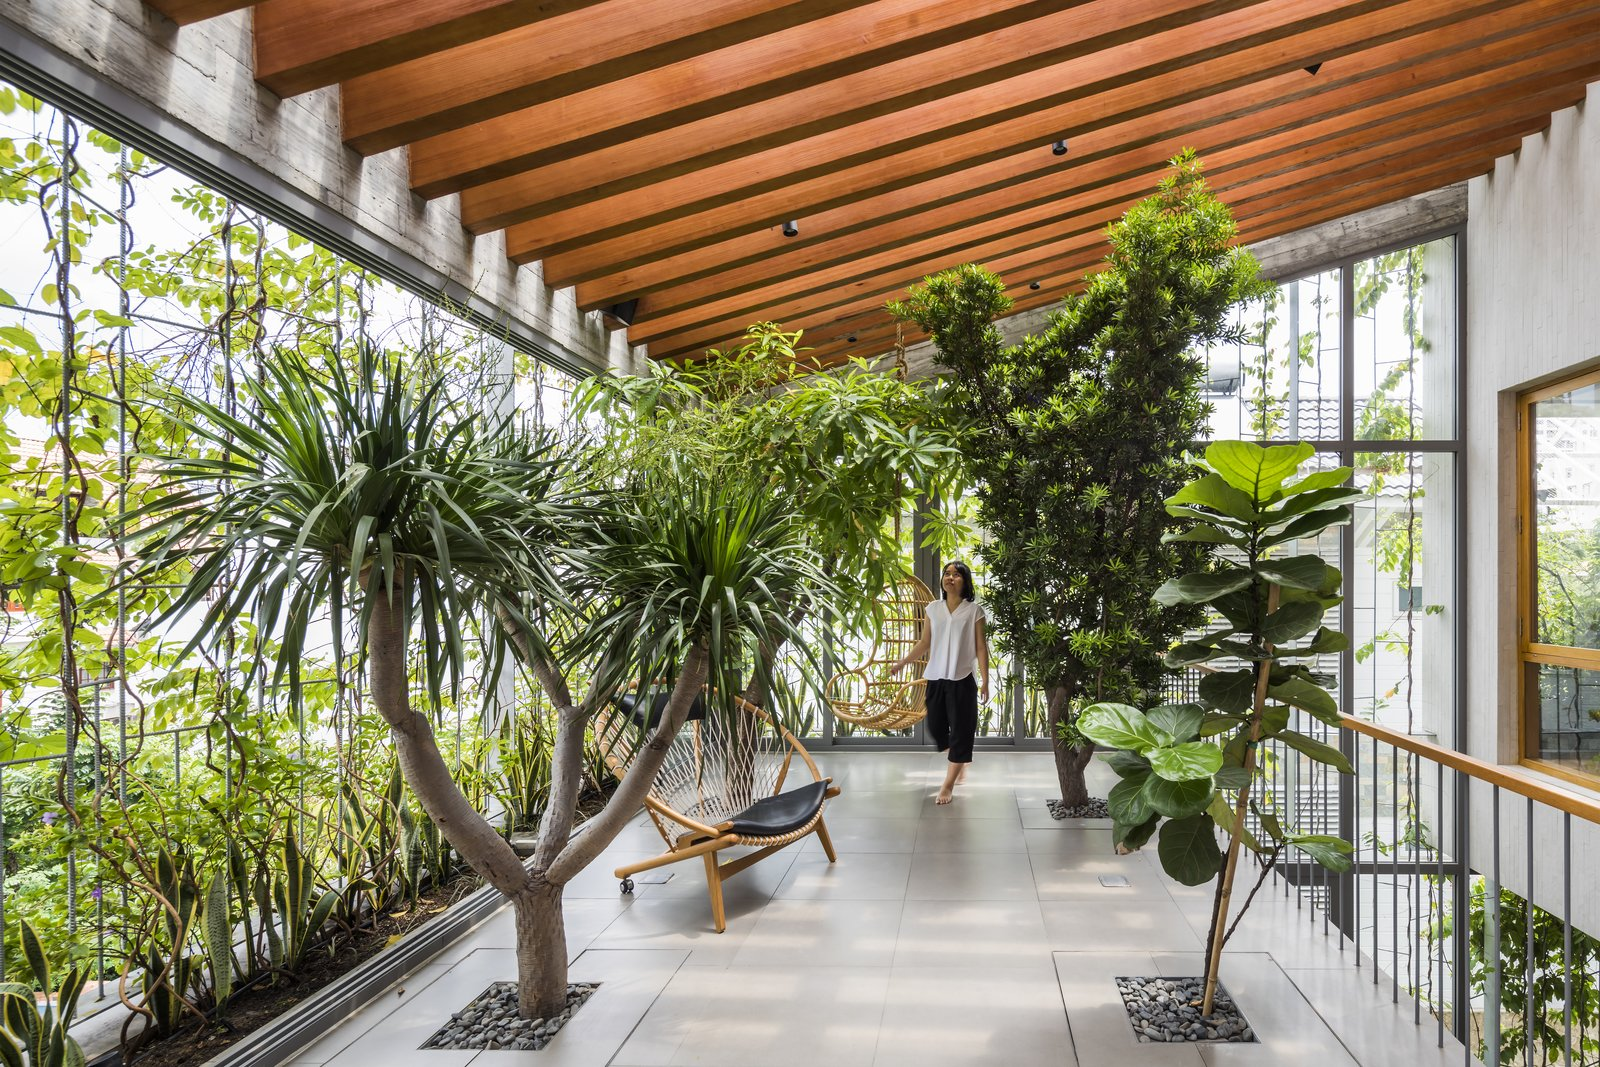 Life in This Verdant Home in Vietnam Is a Walk in the Park